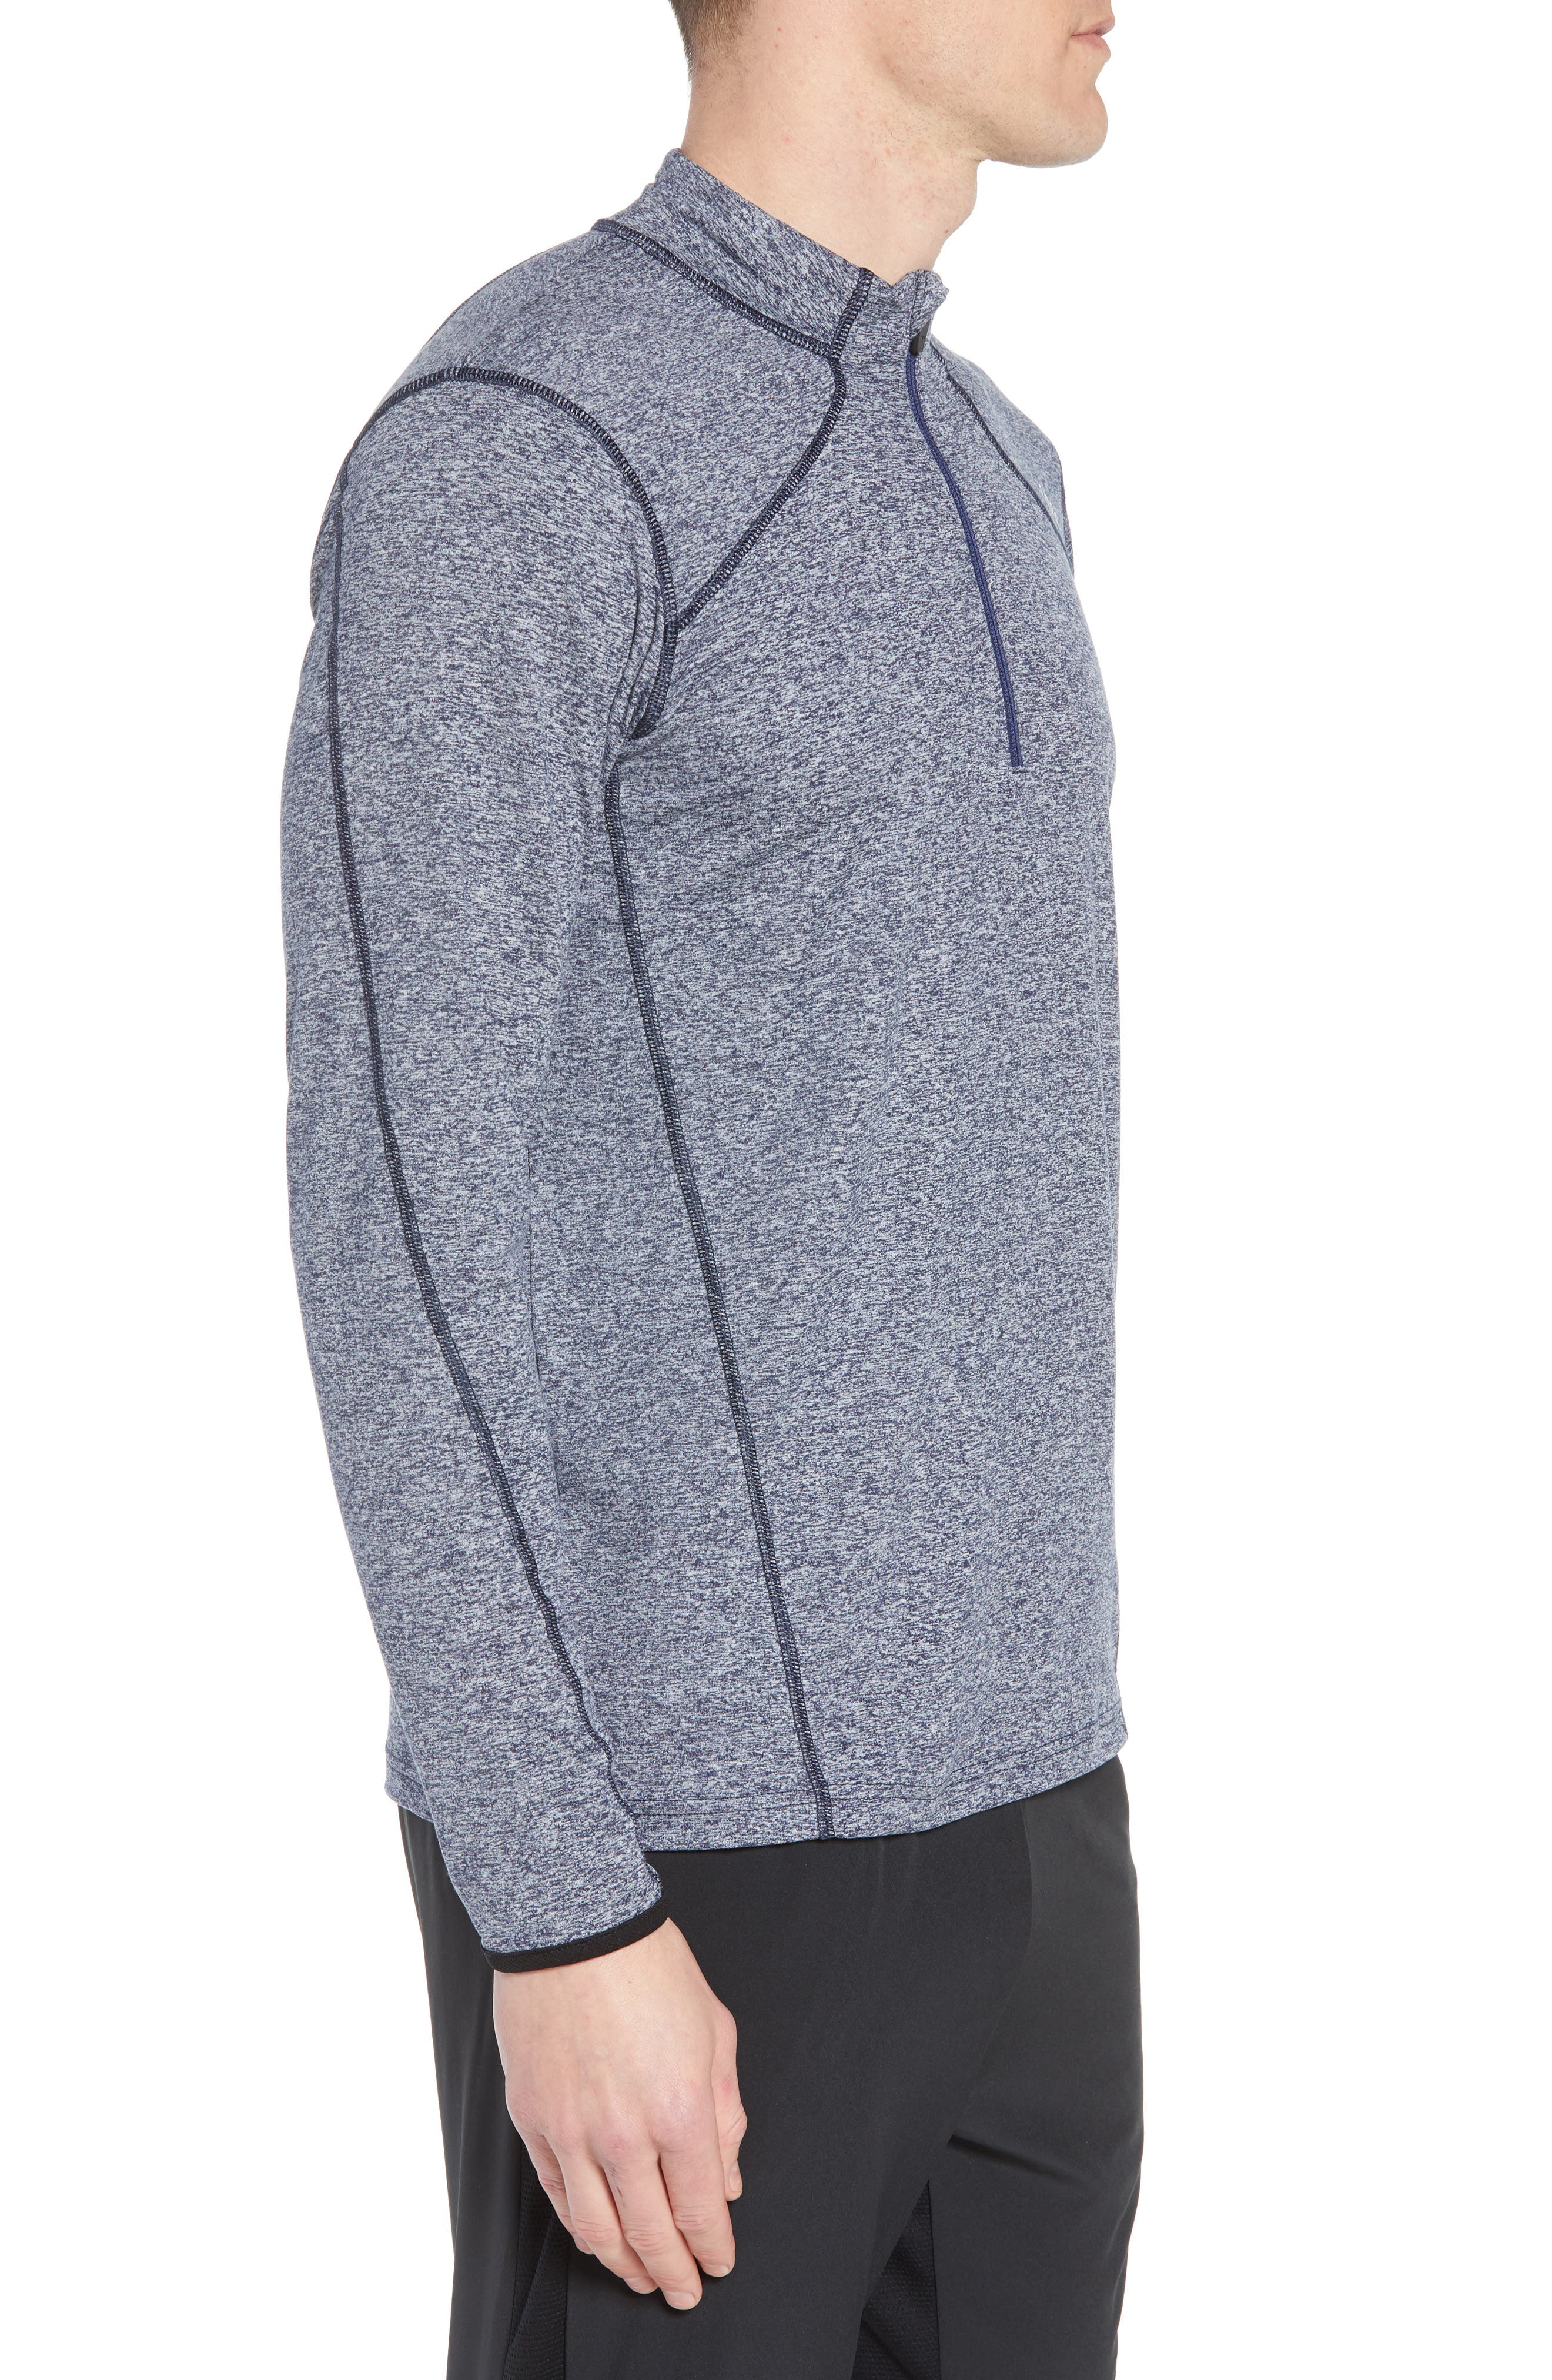 'Elevate' Moisture Wicking Stretch Quarter Zip Pullover,                             Alternate thumbnail 3, color,                             Heather Navy/ Navy